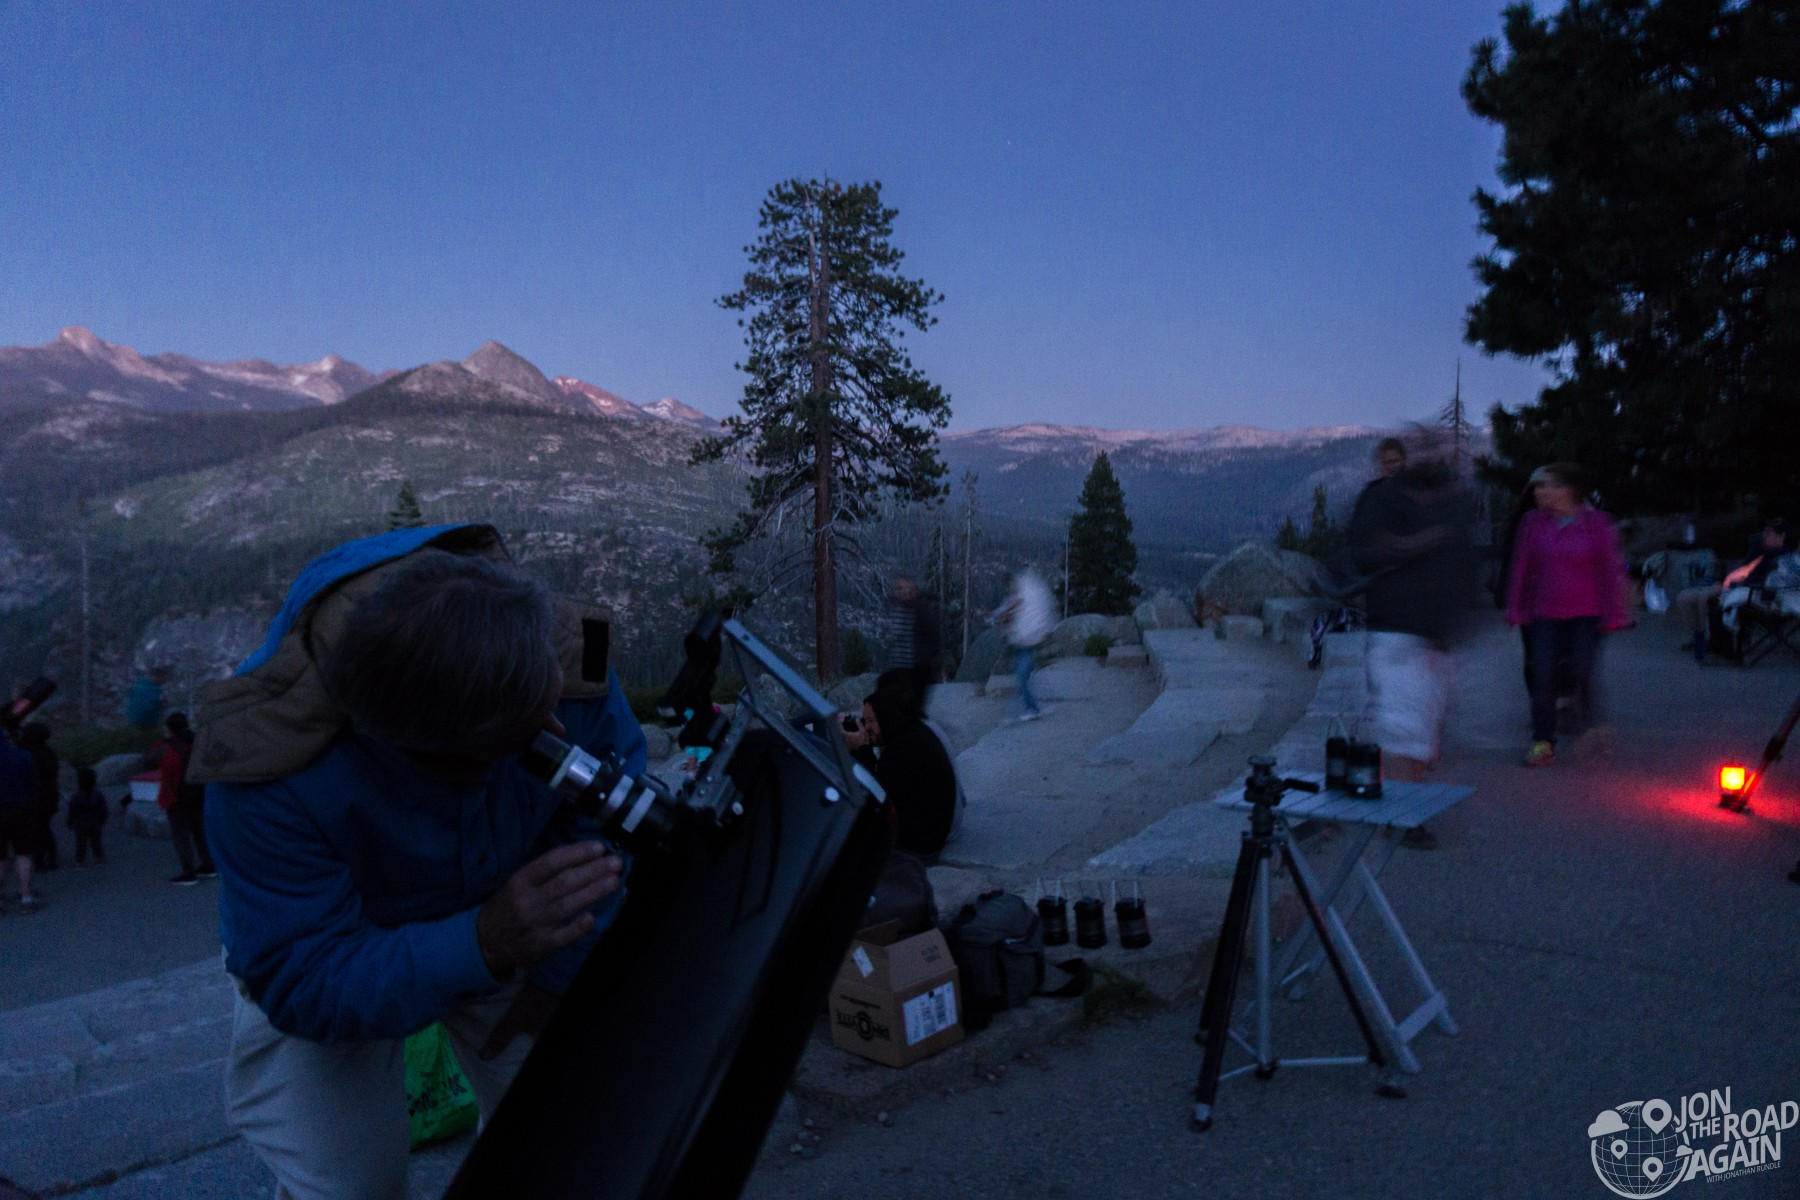 Glacier point star gazing